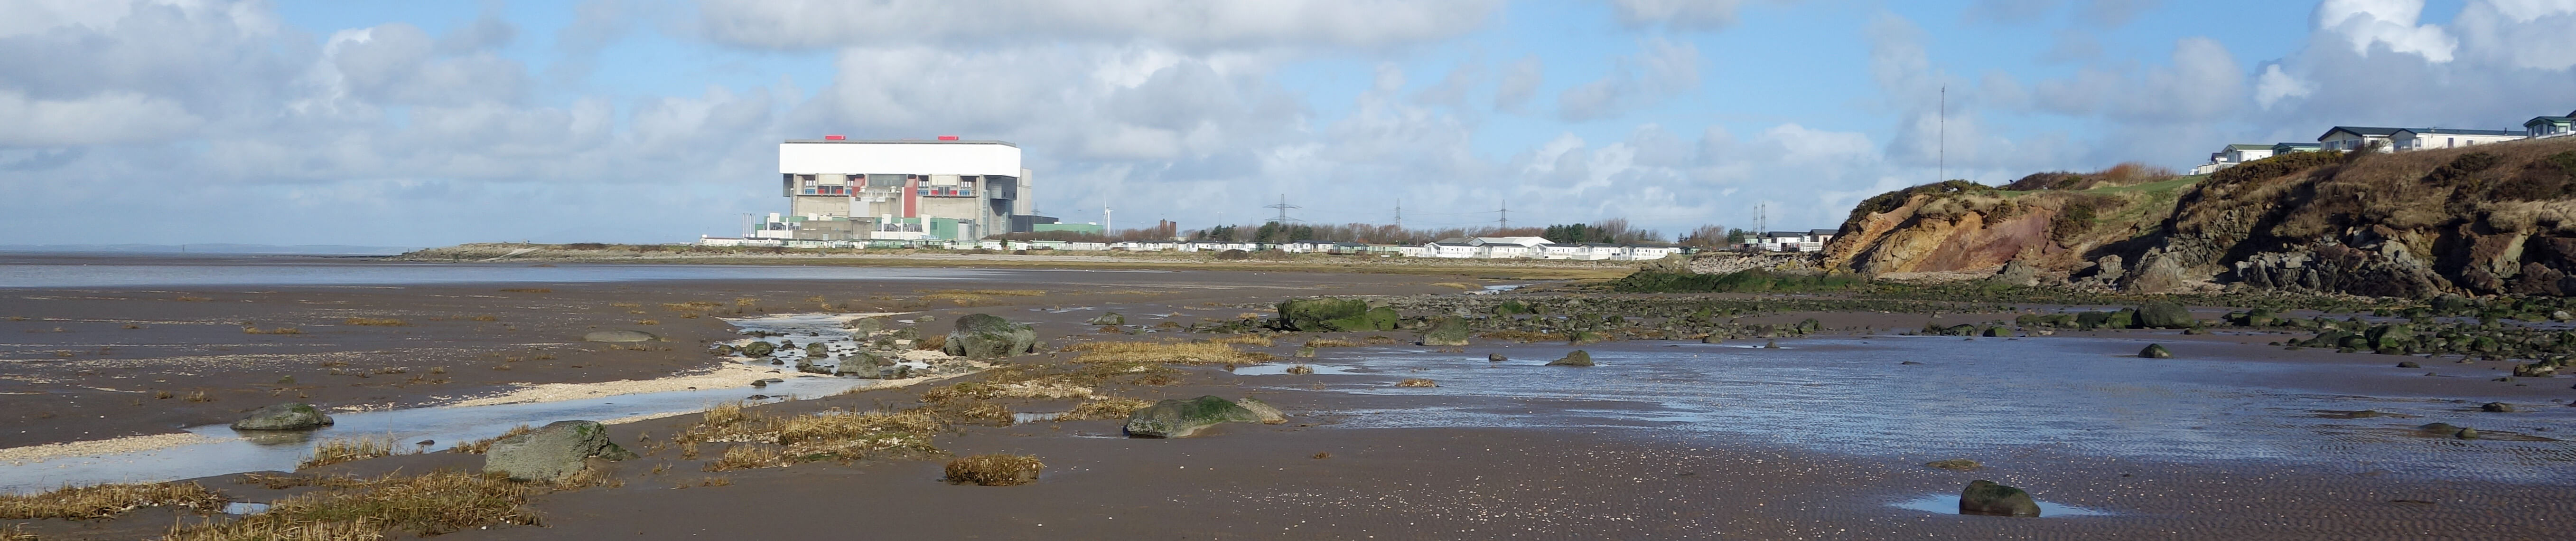 Heysham Power Station